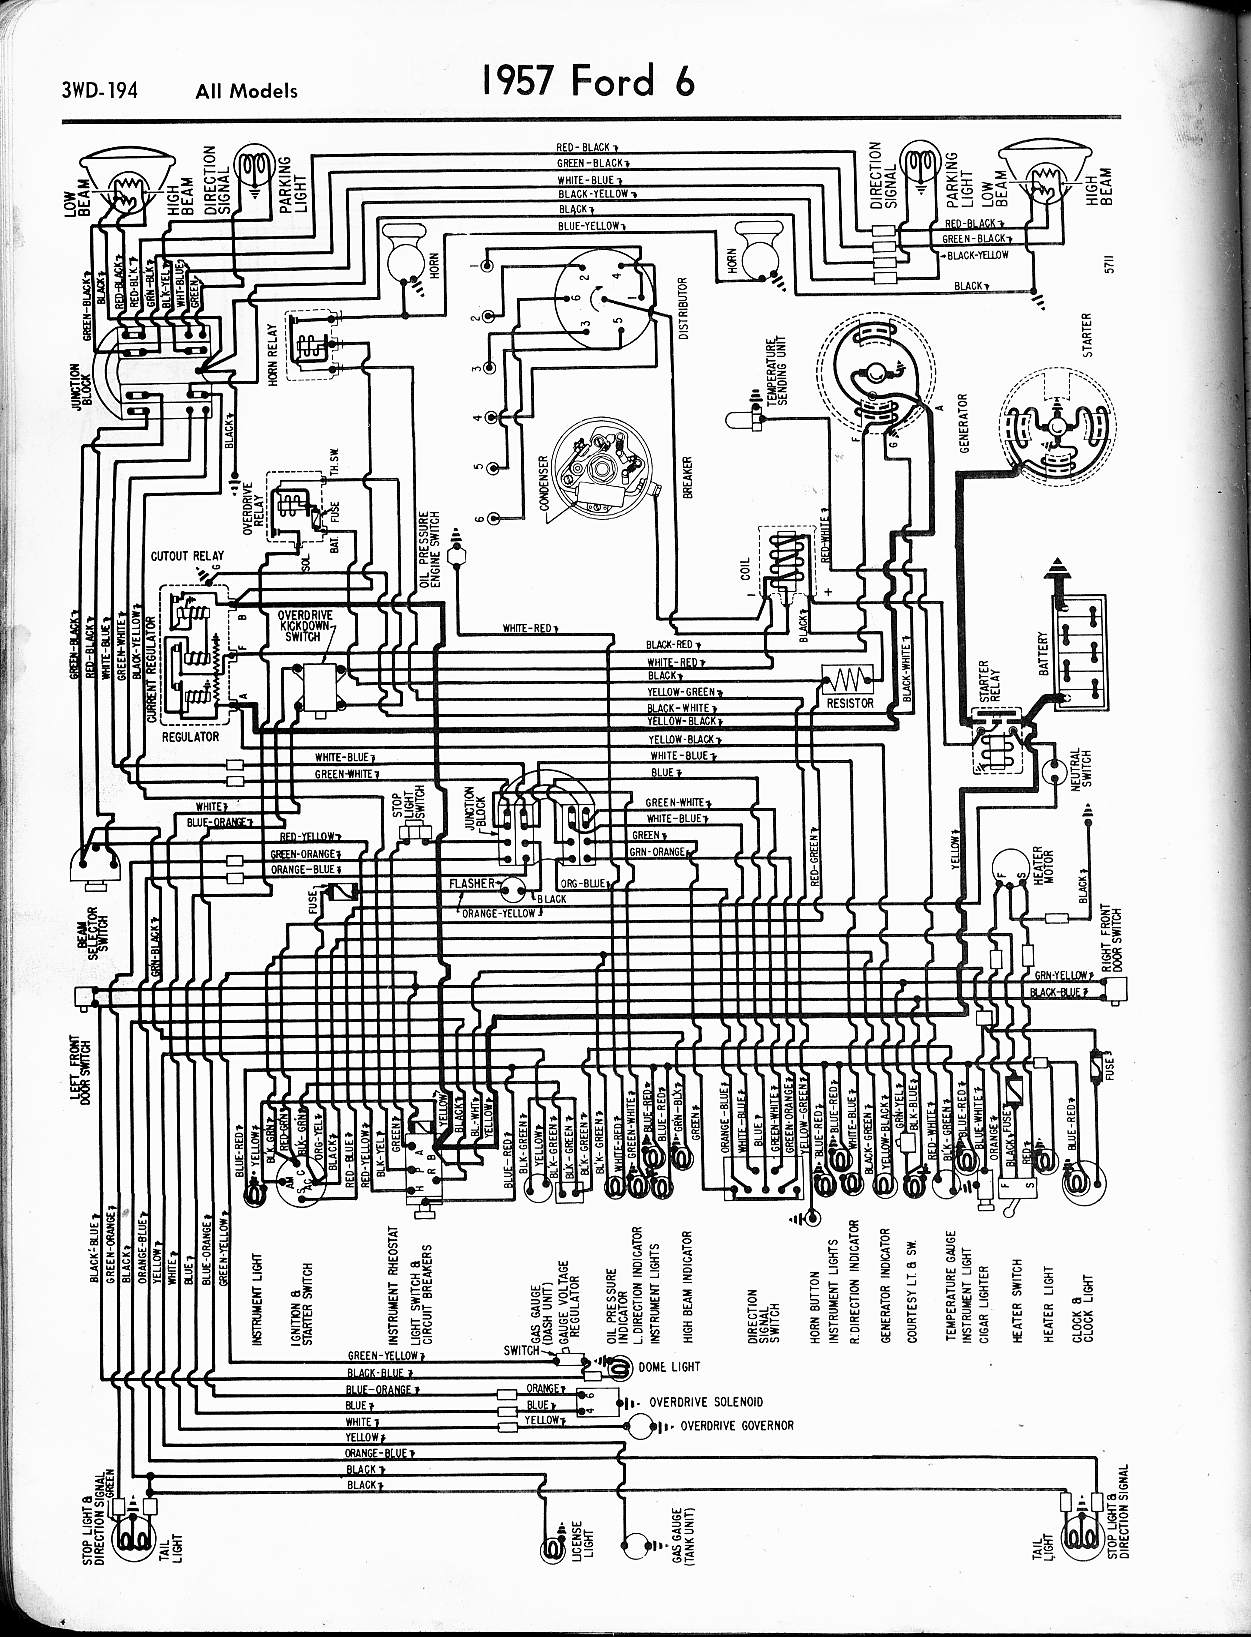 Ford Wiring Diagrams Diagram Data 1954 Chevy Truck Harness 1948 57 65 E 150